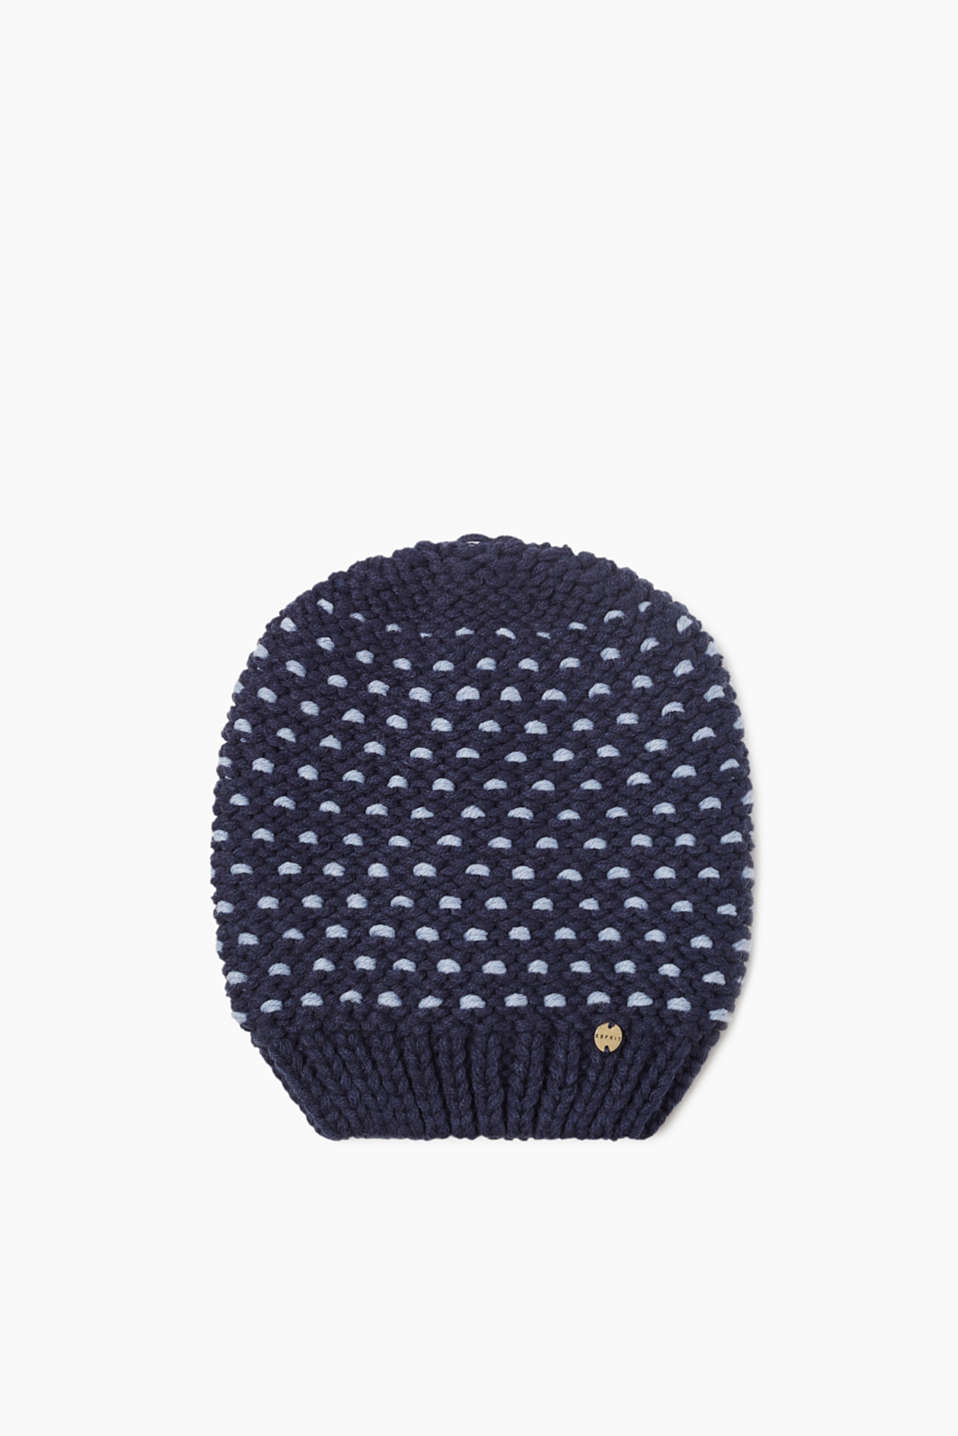 We love knitwear! This beanie is bound to impress with a striking 3D knit on both sides